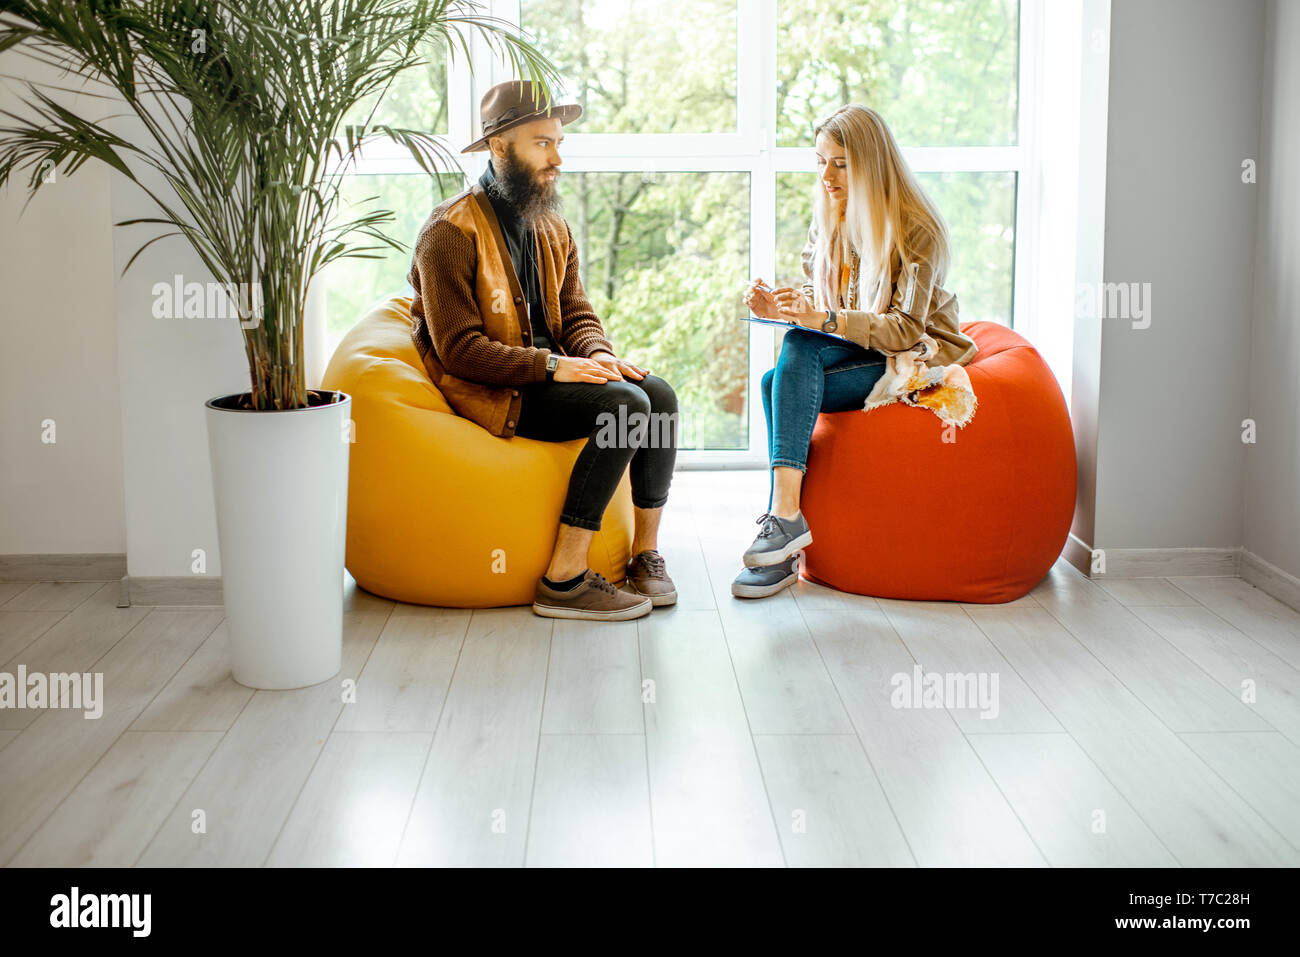 Young Man And Woman Sitting On The Comfortable Chairs During The  Psychological Counseling, Solving Some Psychological Problems In The Office